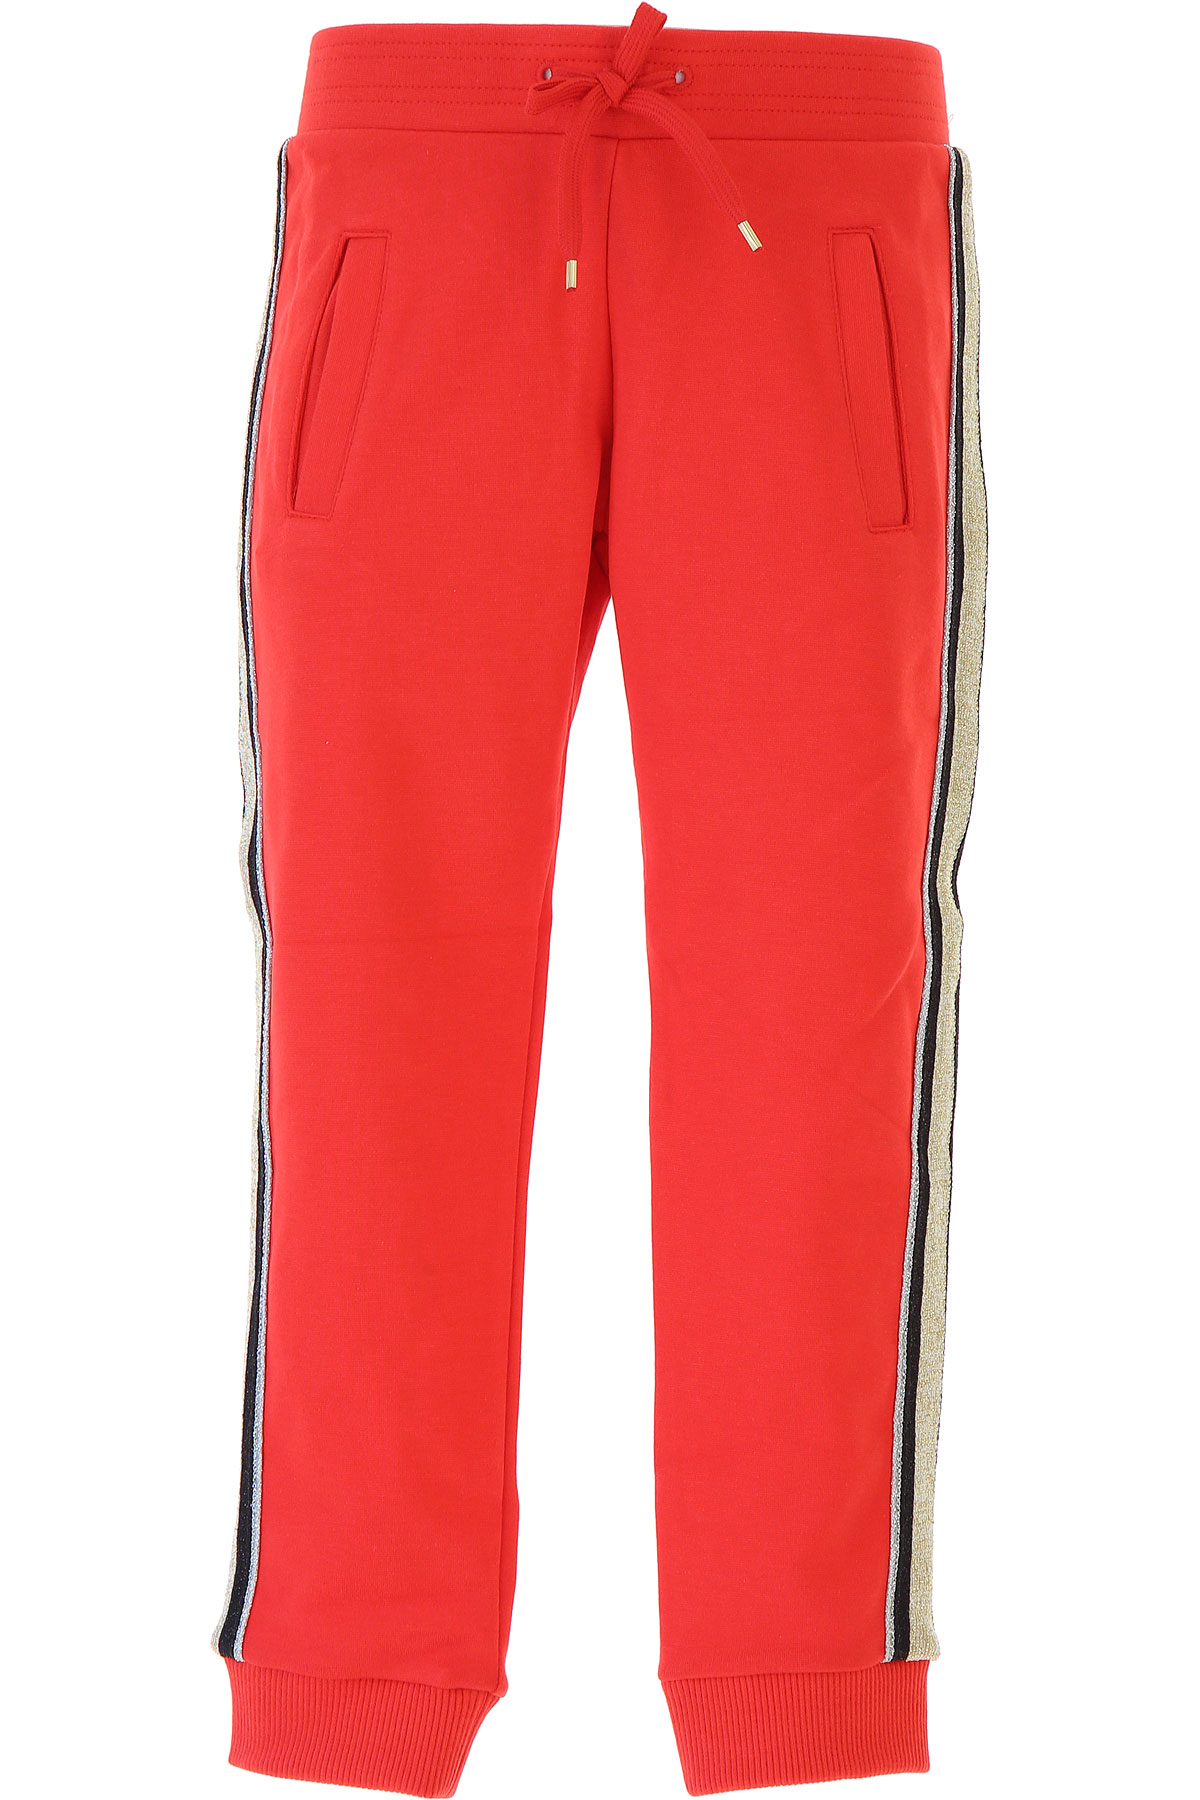 Image of Marc Jacobs Kids Sweatpants for Girls, Red, Cotton, 2017, 10Y 14Y 4Y 6Y 8Y